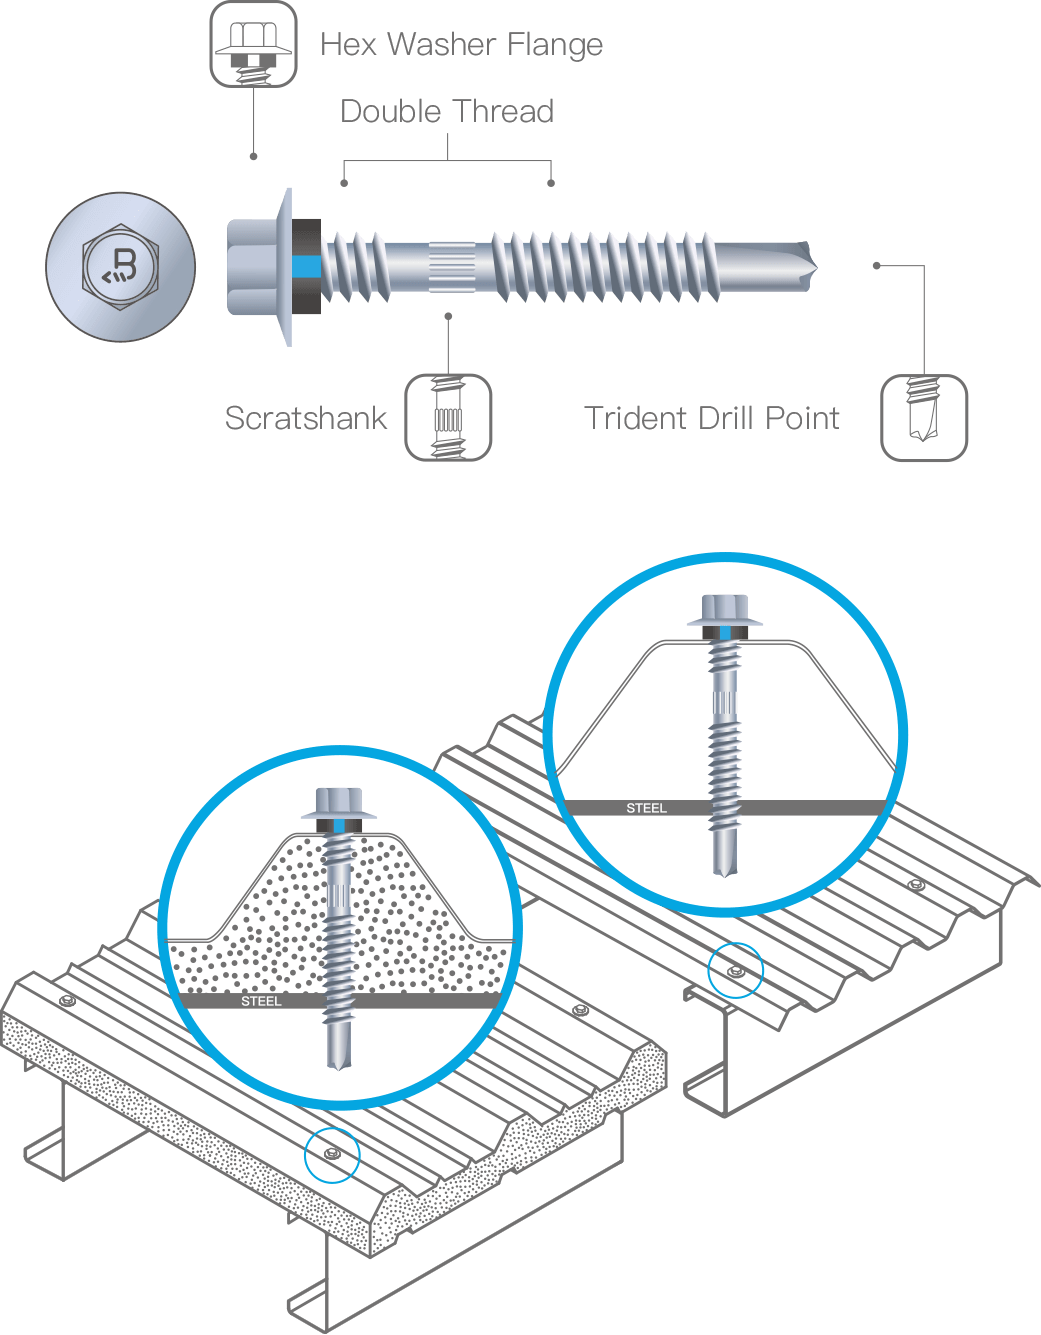 Illustration of BDN Skyblue series L Crest Fixing Trident Drill Point Self Drilling Screw Components